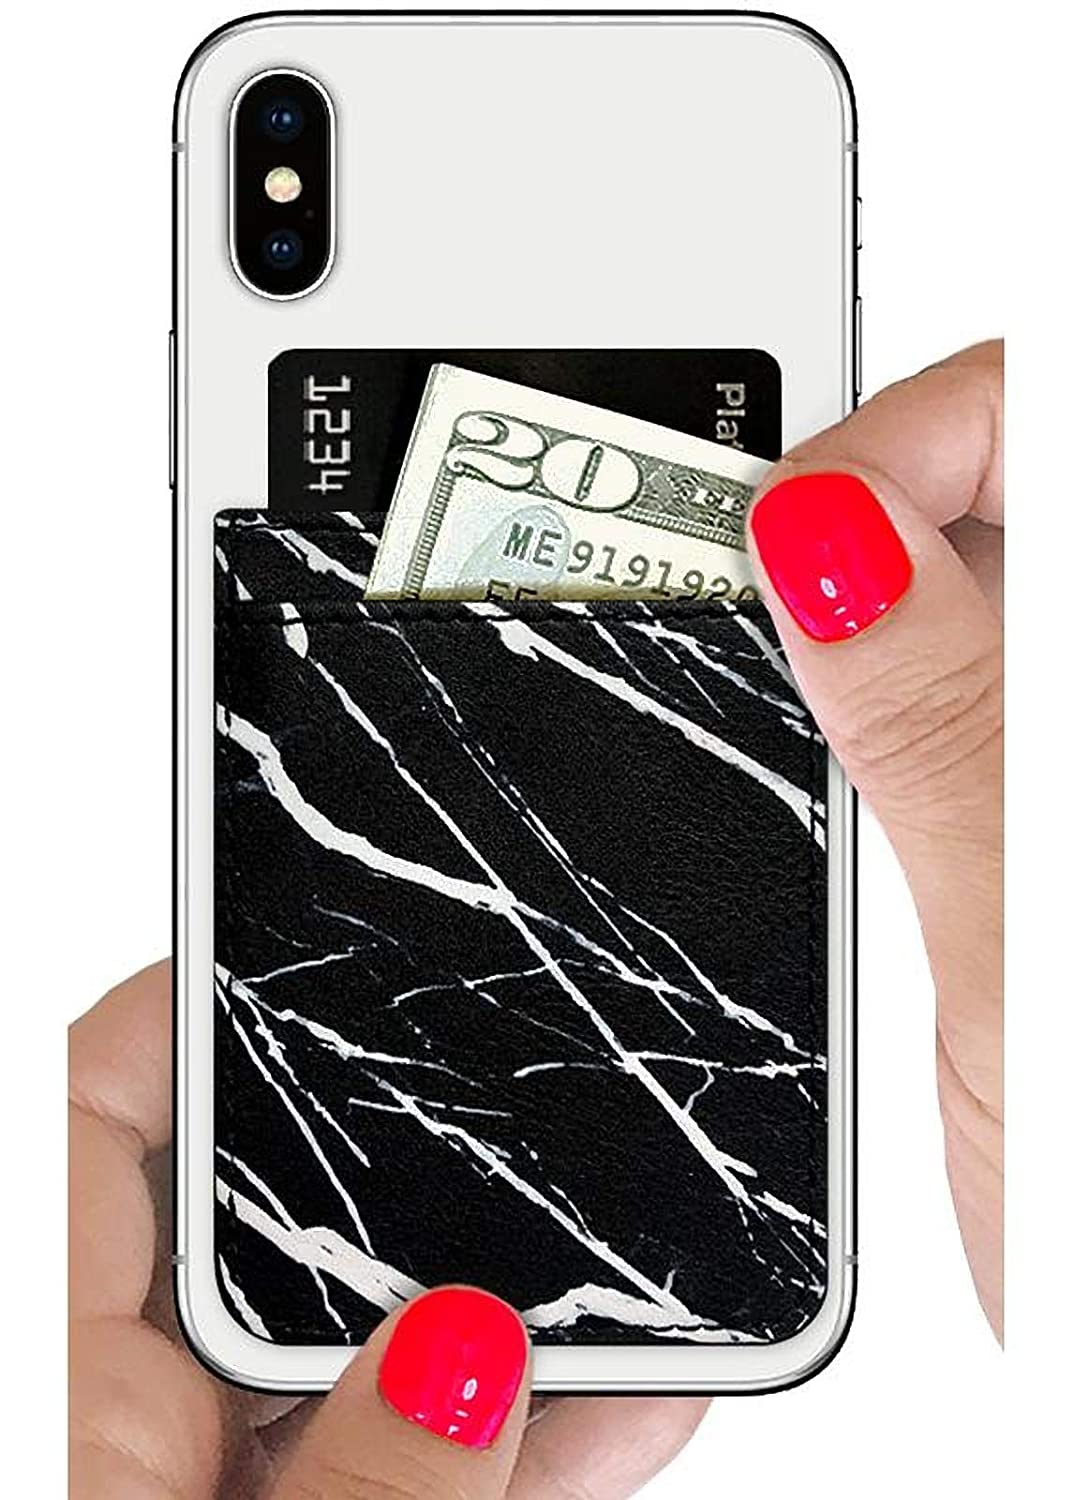 Galaxy and More. iPhone Samsung Apple Slim Card Holder Black Marble Leather Universal fit Stick On Credit Card Wallet iDecoz Phone Pockets